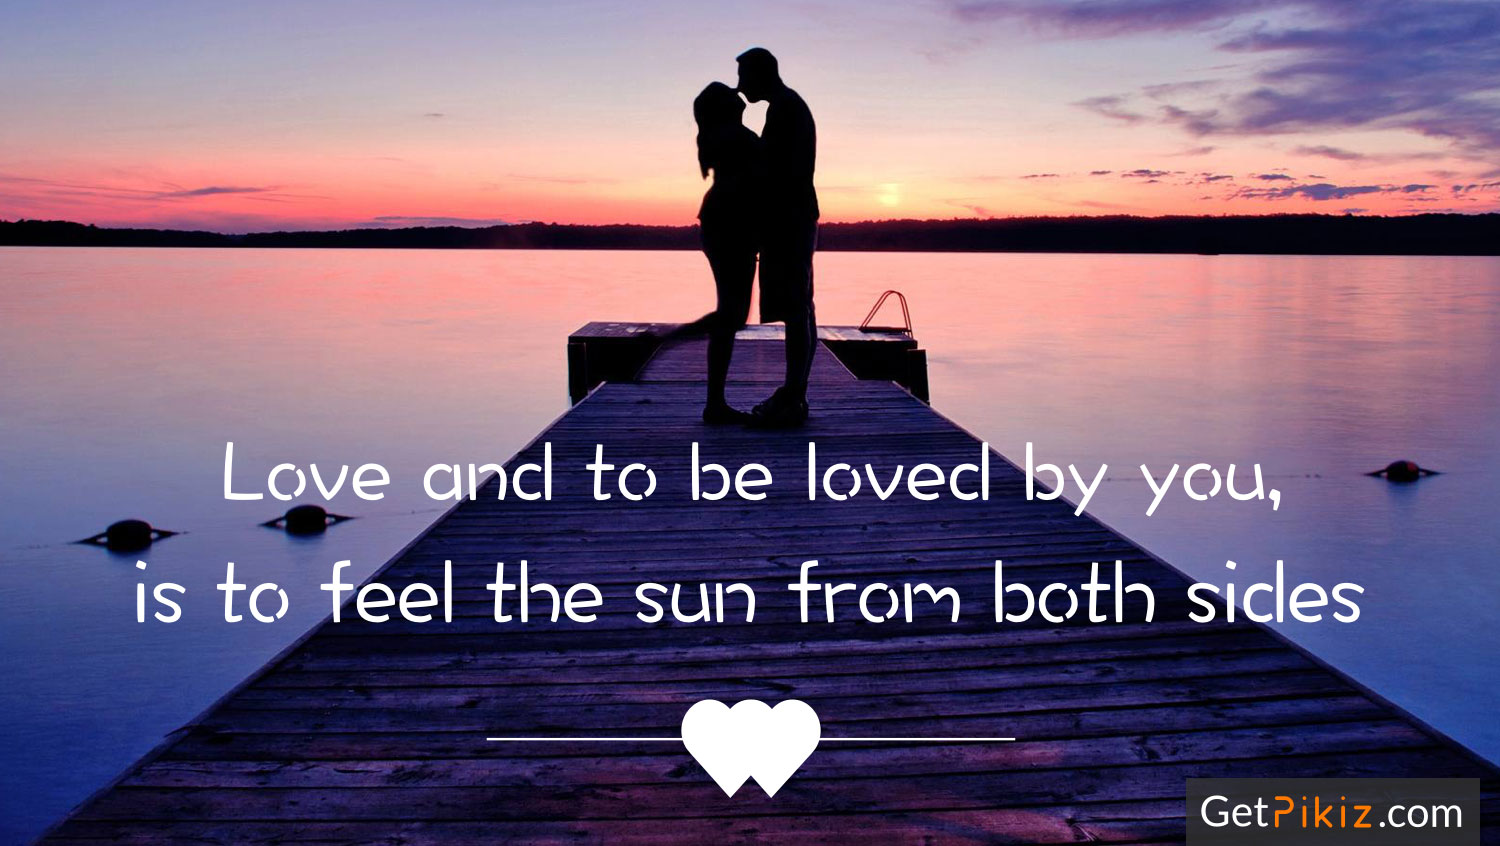 Love and to be loved by you, is to feel the sun from both sides